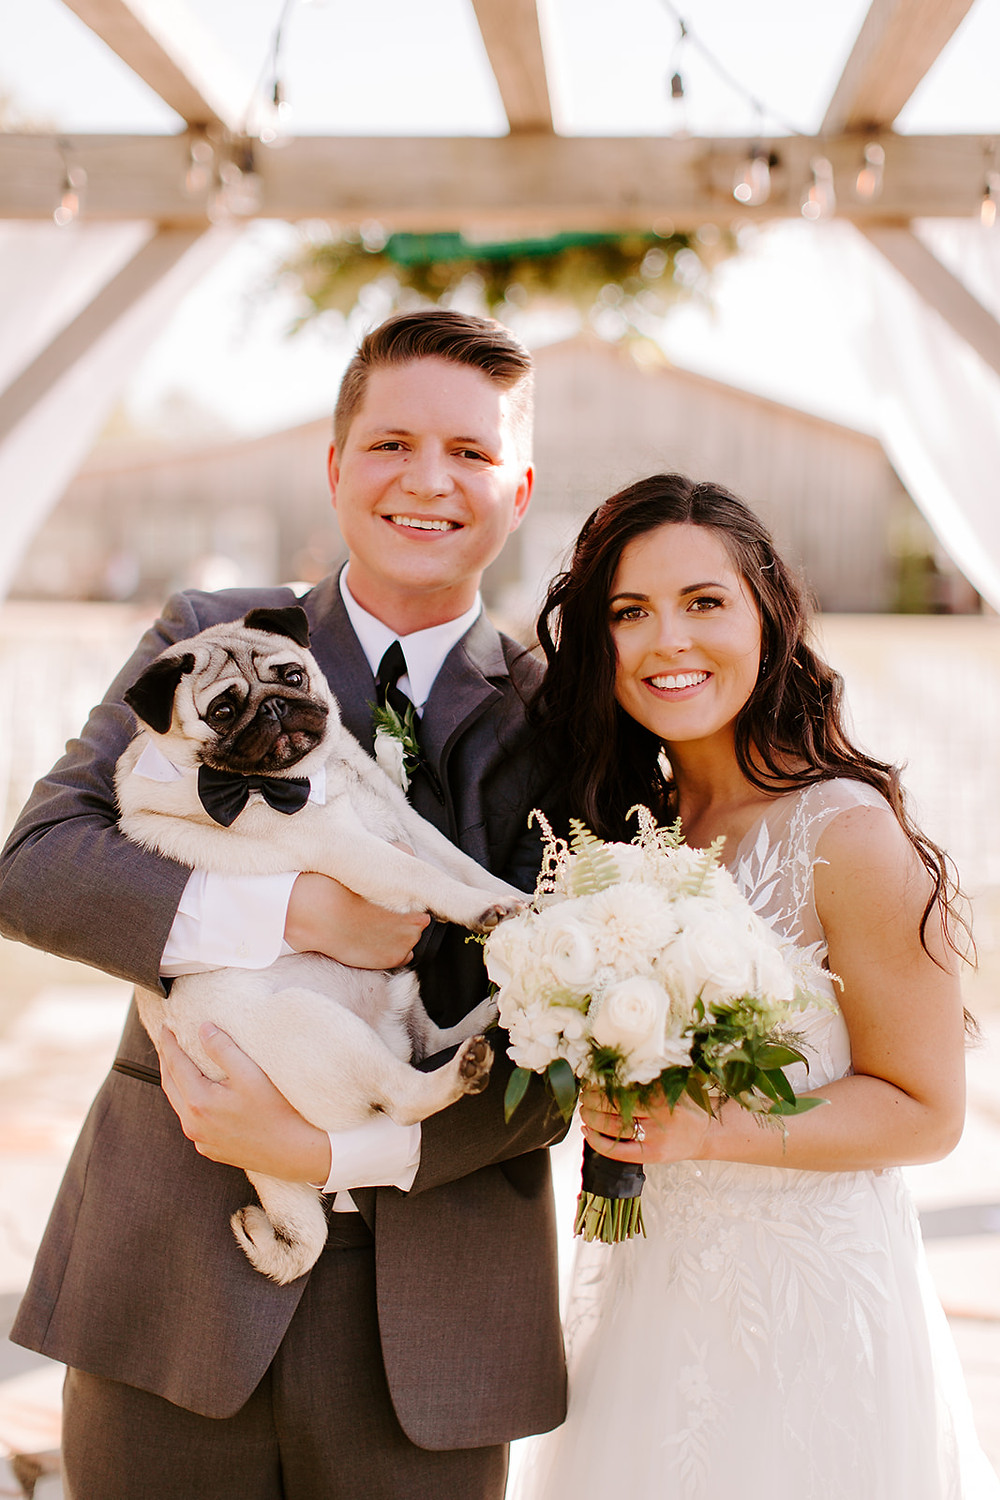 Bride and Groom getting a picture with their dog on their wedding day.